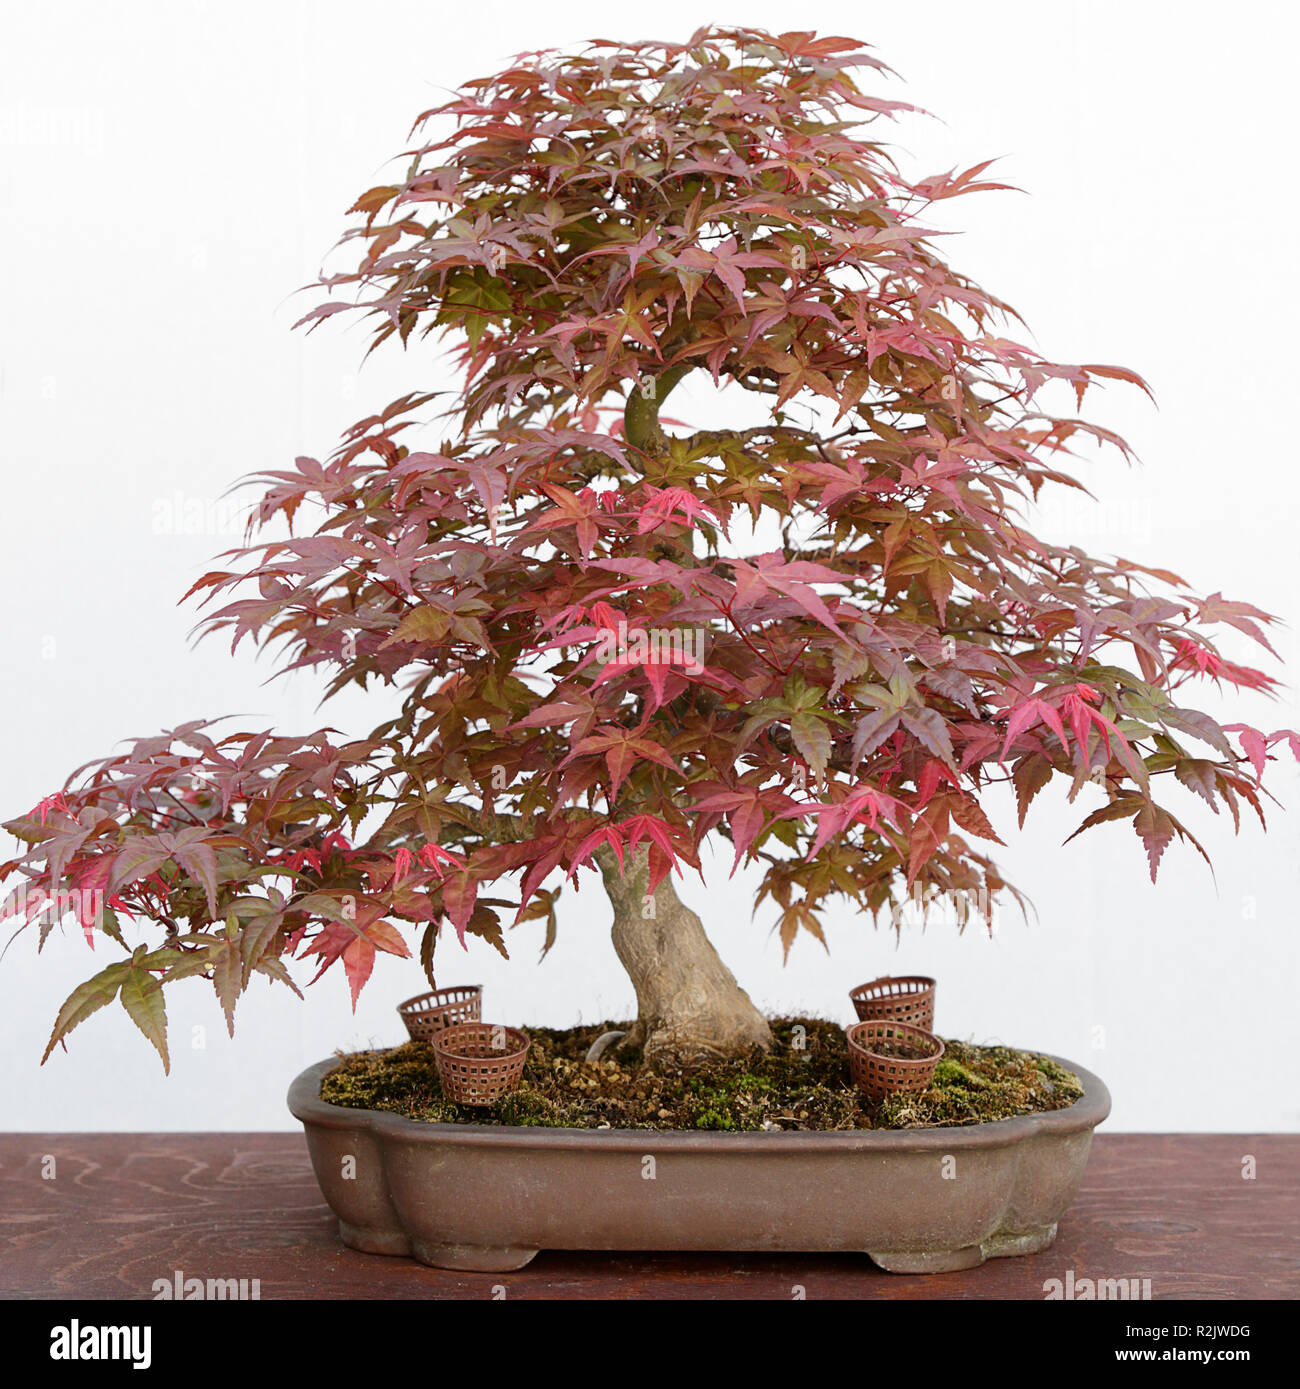 Maple Bonsai Stock Photos Maple Bonsai Stock Images Alamy